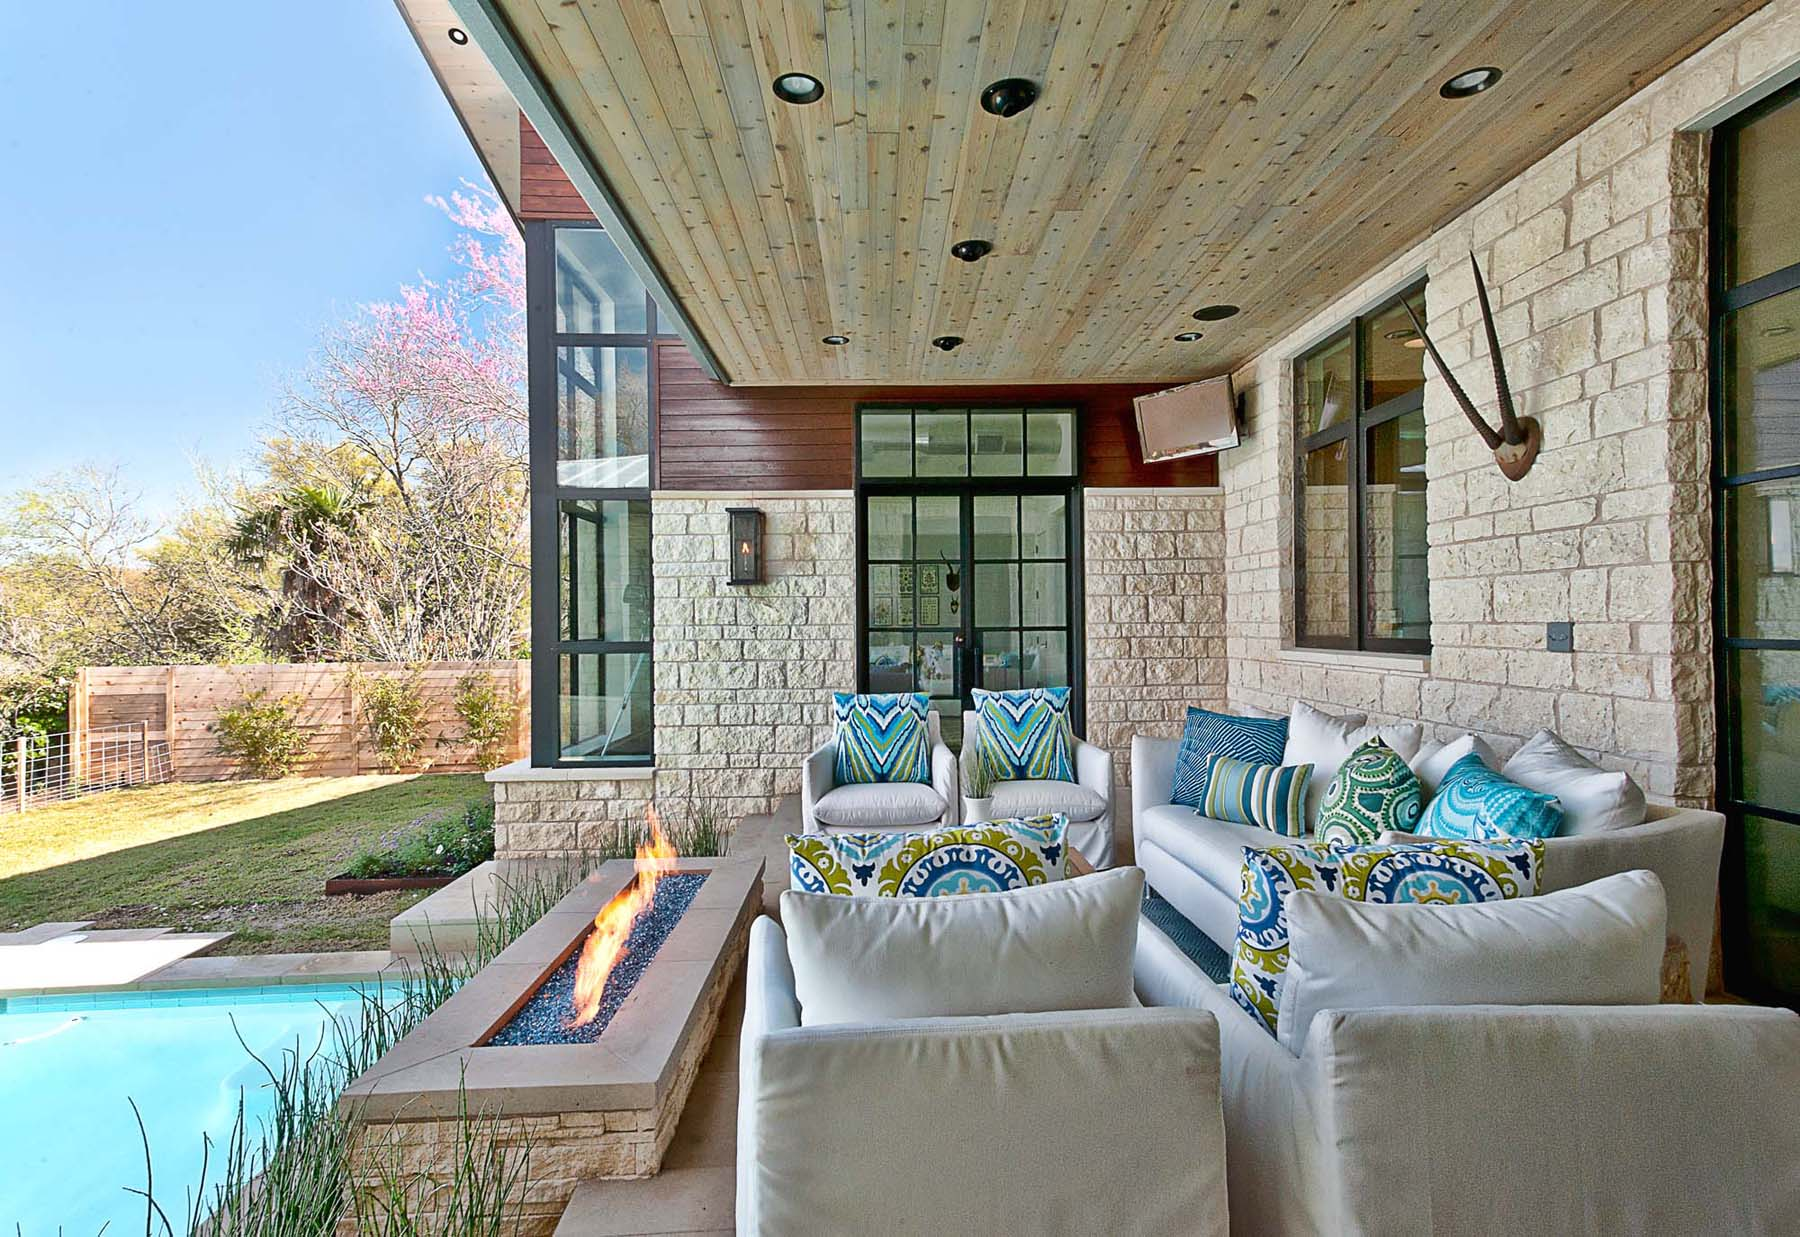 Outdoor Patio with Modern Fireplace